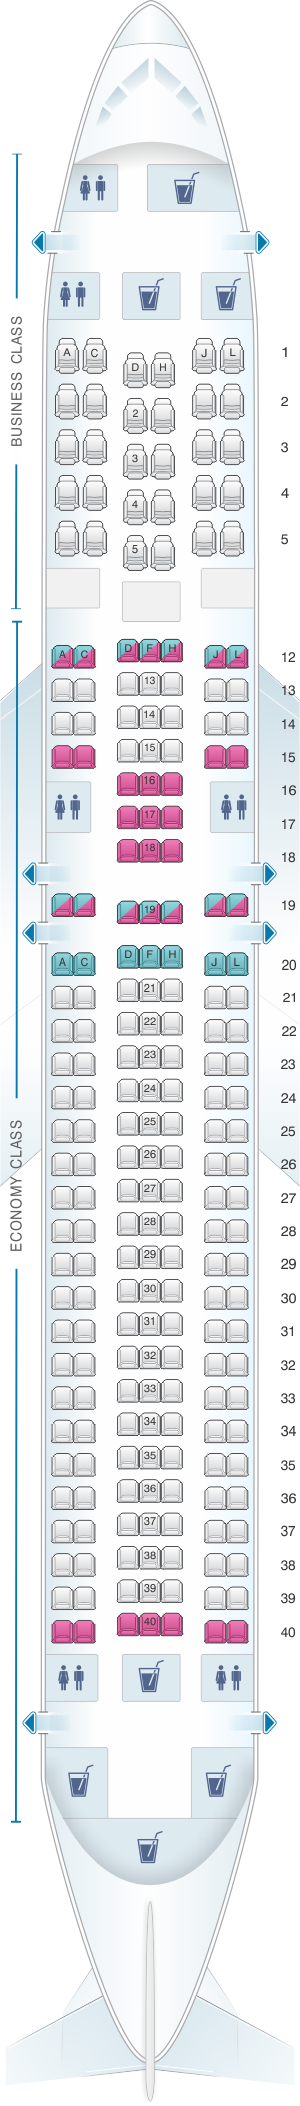 Seat map for LATAM Airlines Boeing B767 300